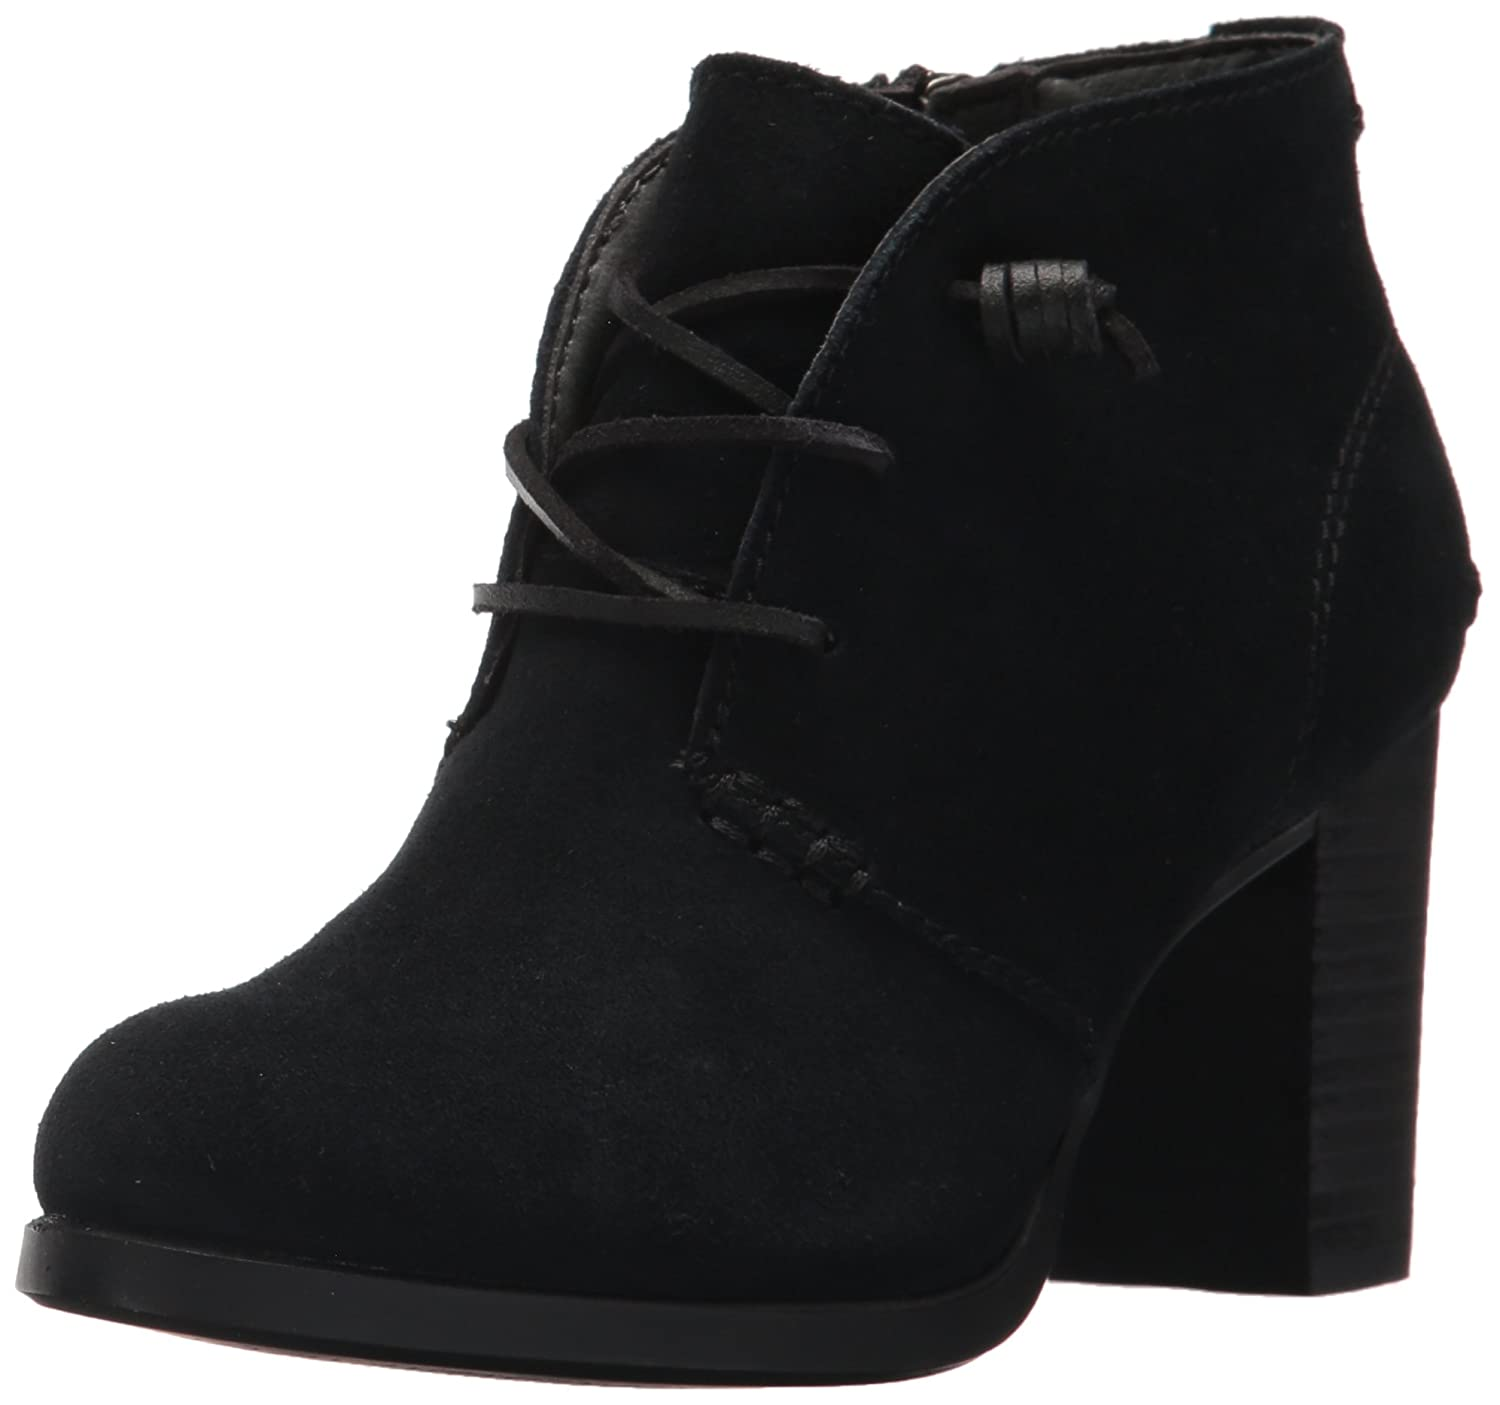 Sperry Top-Sider Women's Dasher Gale Ankle Boot B01N5HI4K3 5 B(M) US|Black